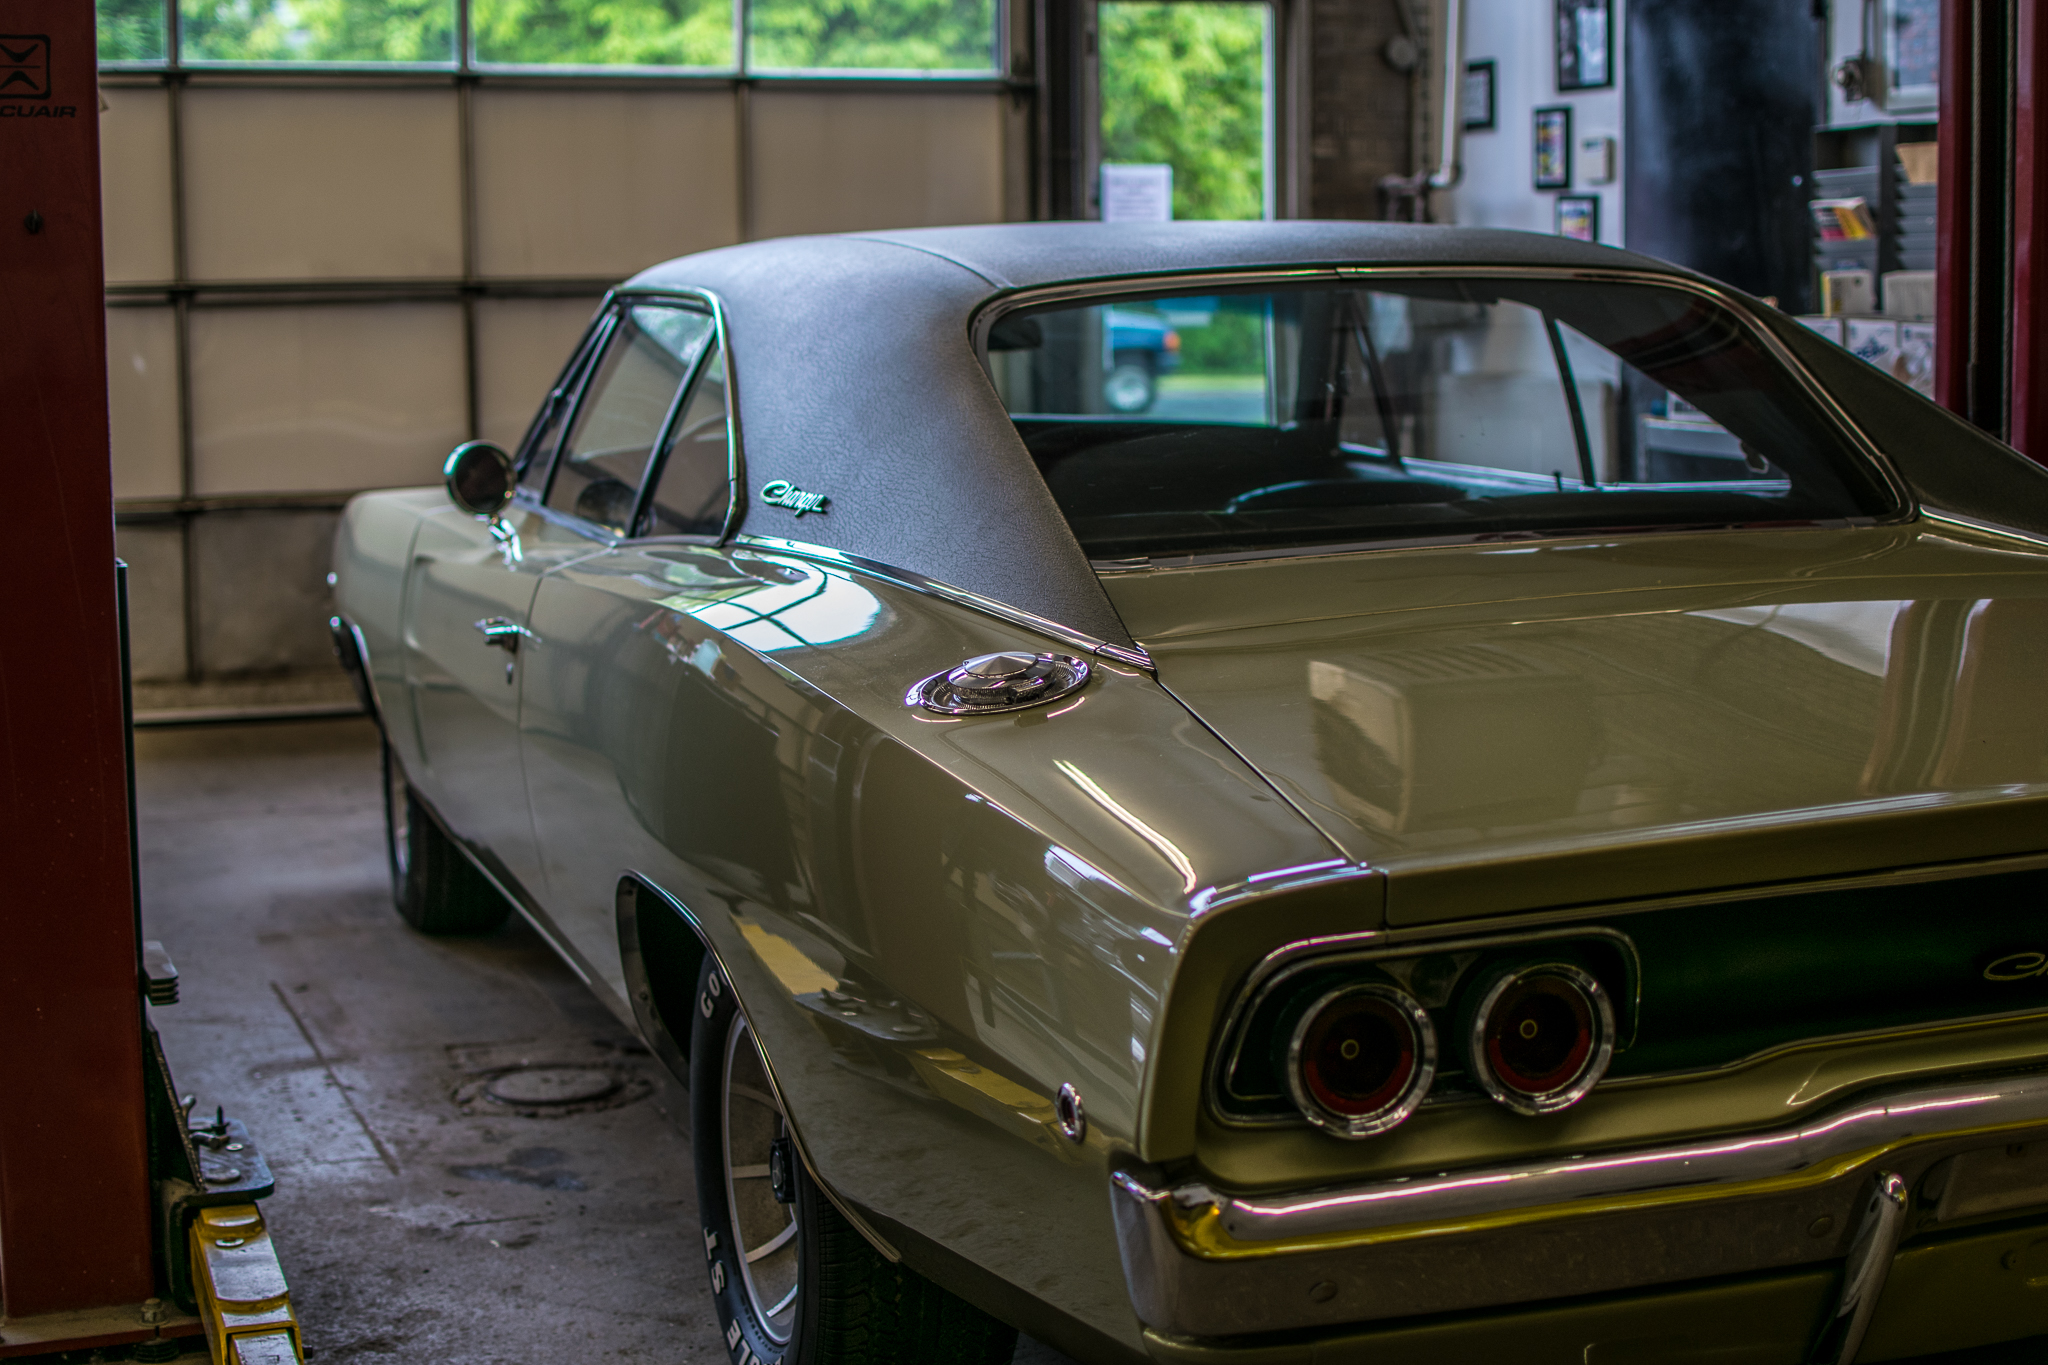 Mark's 1968 Dodge Charger